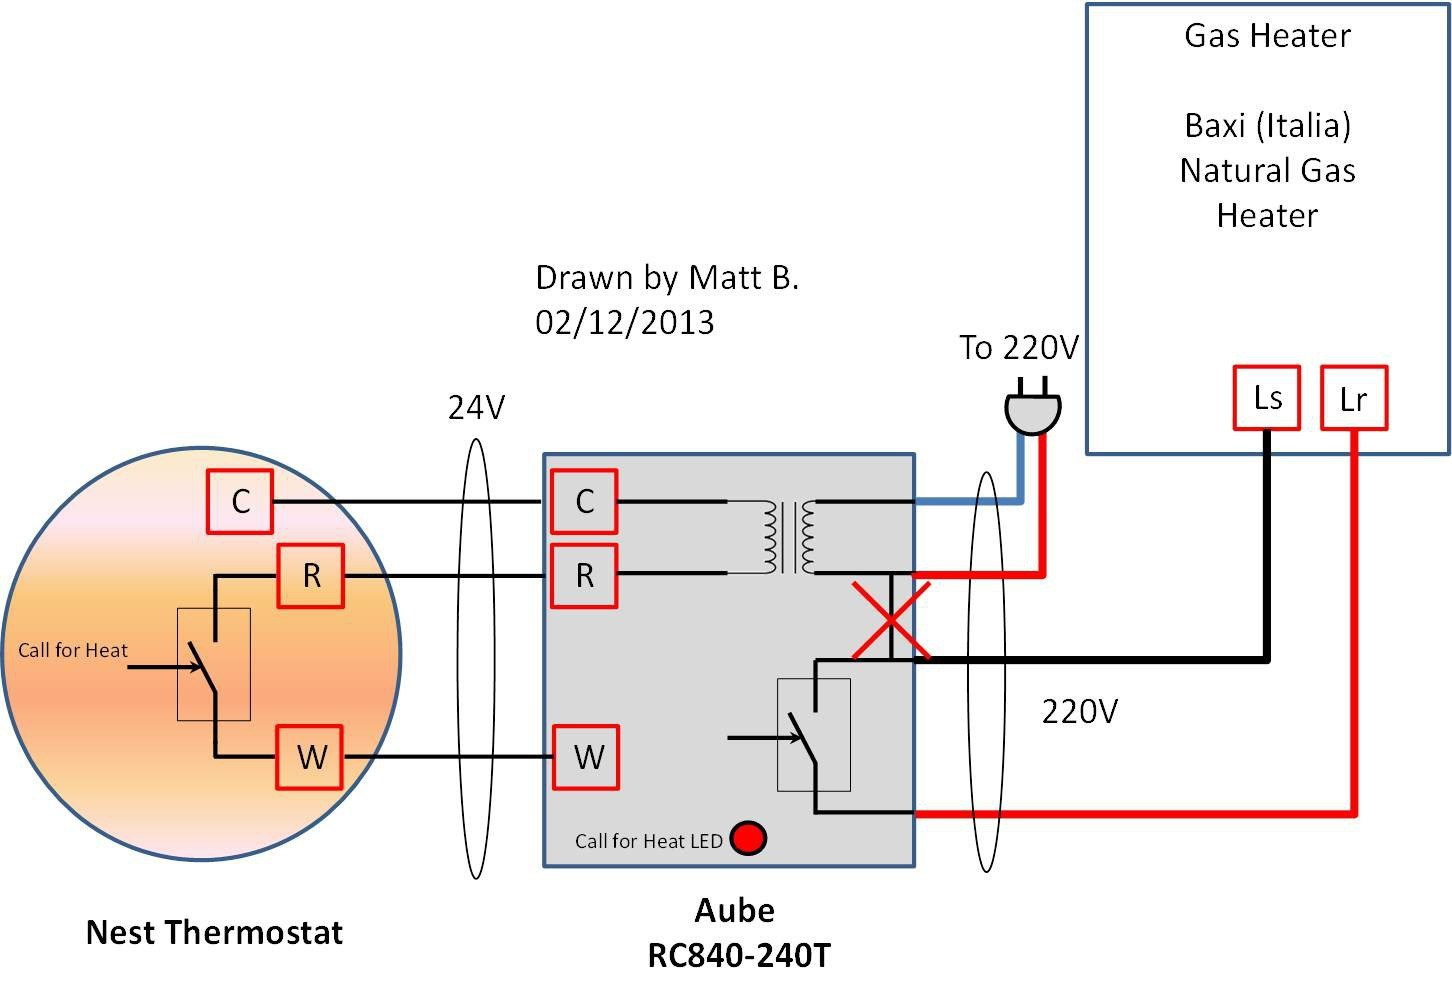 Wiring Diagram For Nest Thermostat Uk | Wiring Diagram - Wiring Diagram For Nest Thermostat Uk